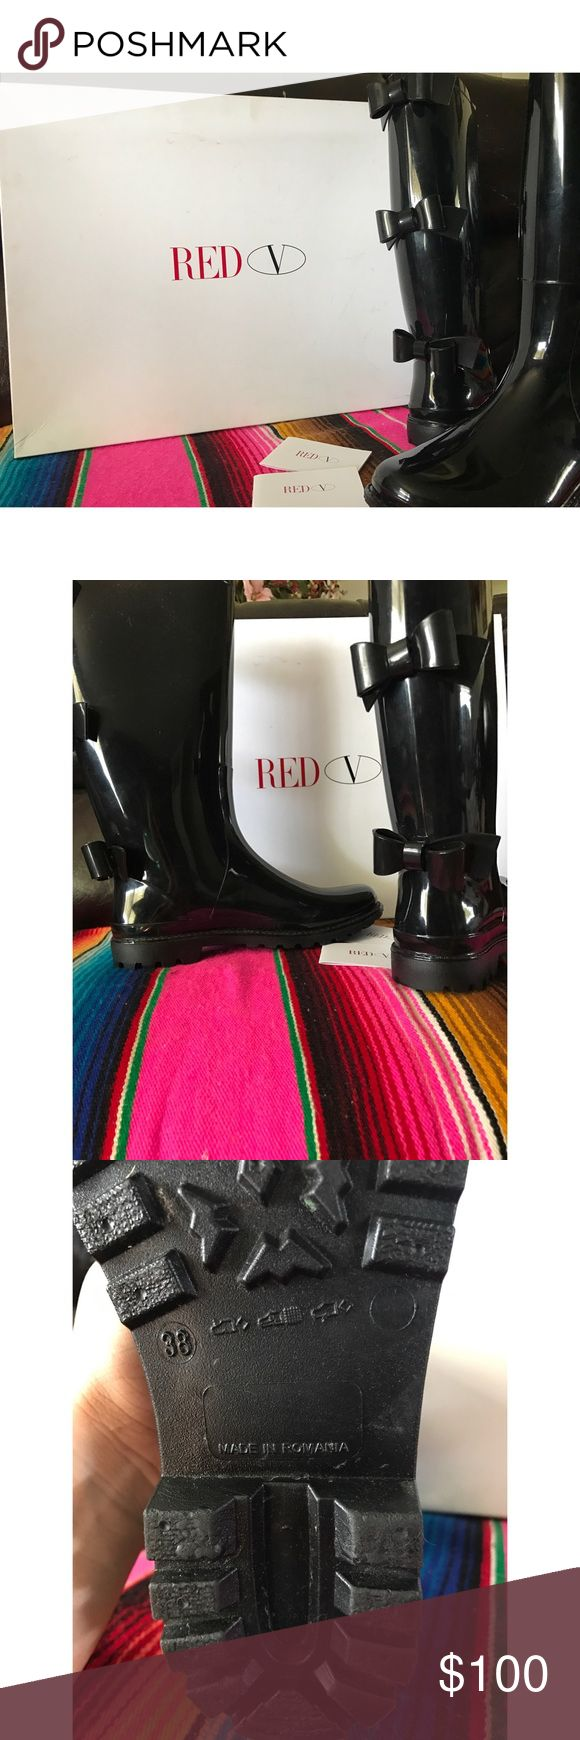 RED Valentino black Rain boots Super cute comfy rain boots!! Excellent condition, barely used because it's barely rains over where I live so why not get rid of them? Size 8, and they don't run small around the calves area because that's one of my struggles lol, feel free to ask any more Qs!! RED Valentino Shoes Winter & Rain Boots